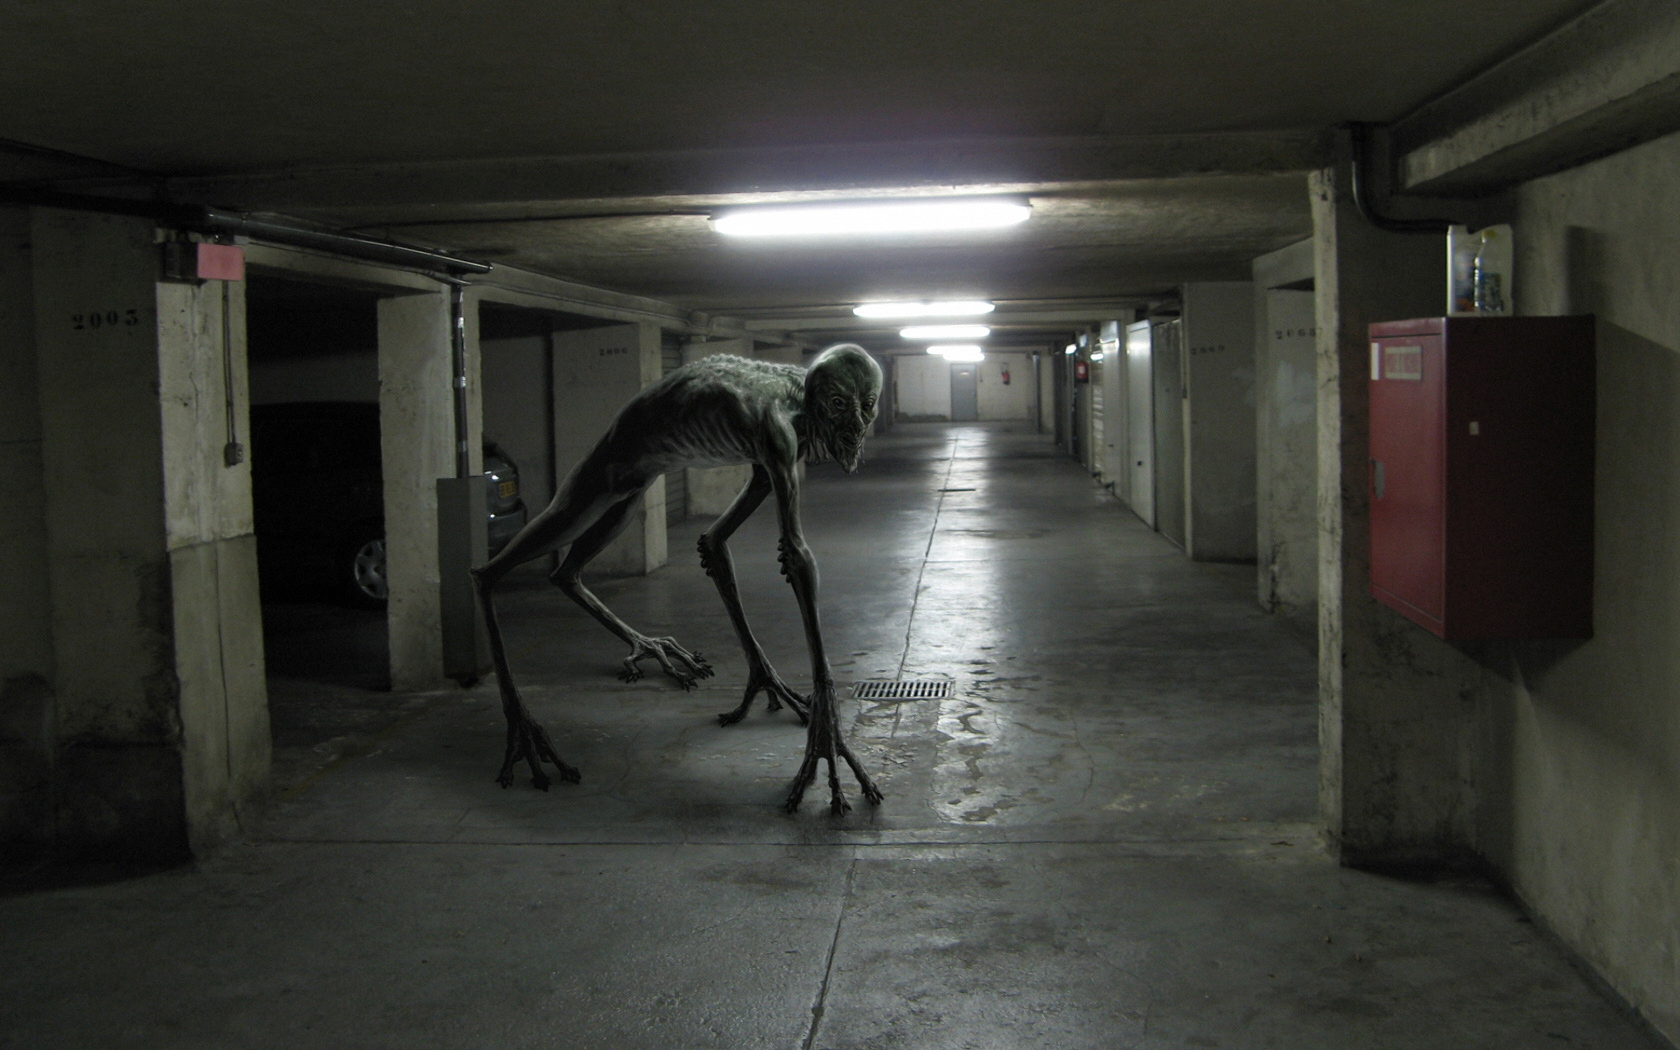 monsters, hallway, creep, spooky, creatures, alien life forms, Alien